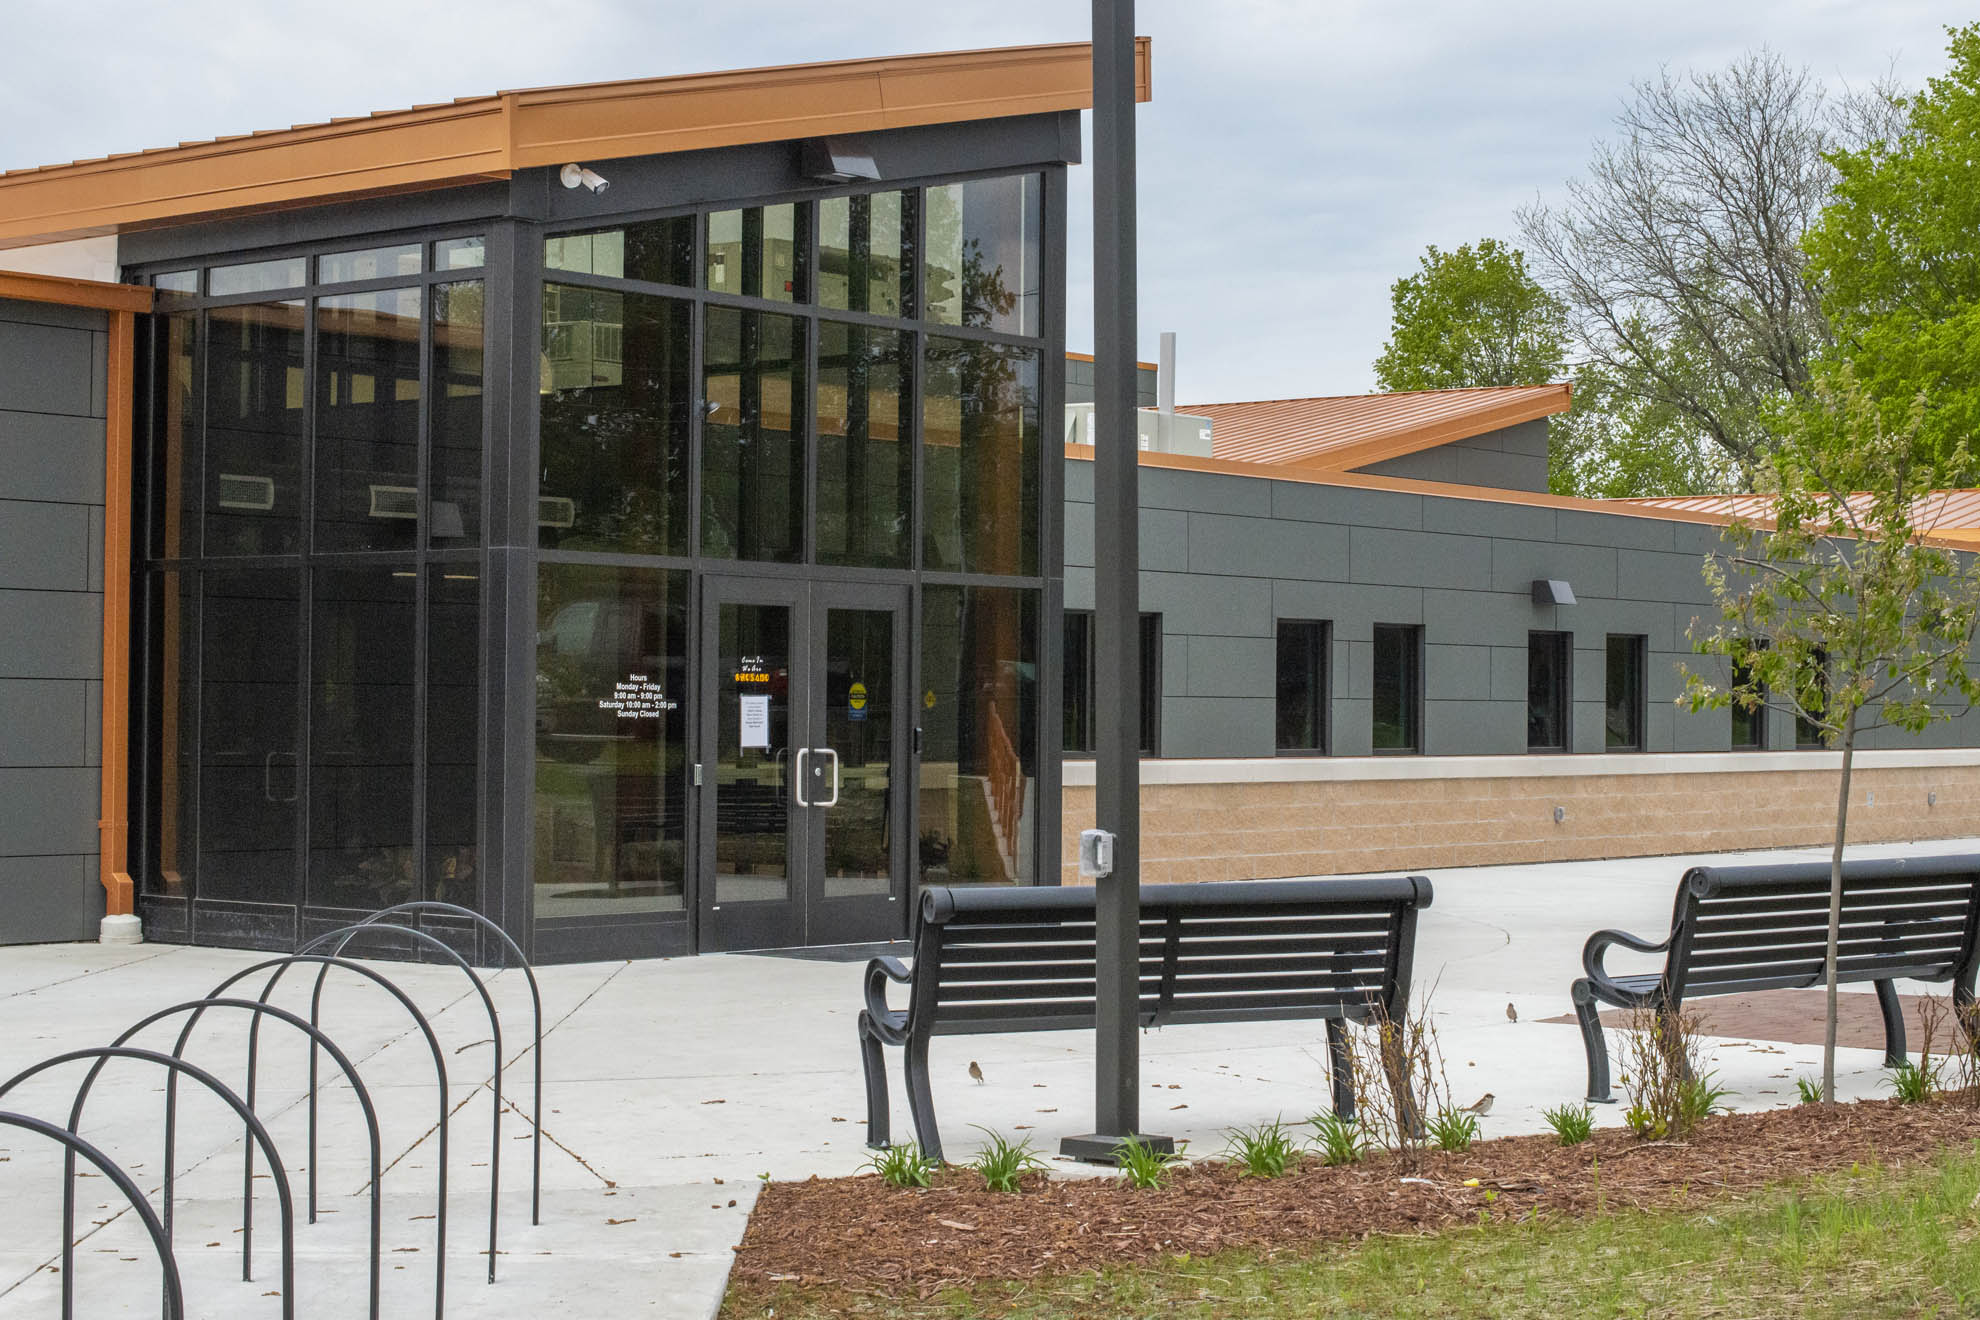 Charles Black Center in South Bend designed by JPR